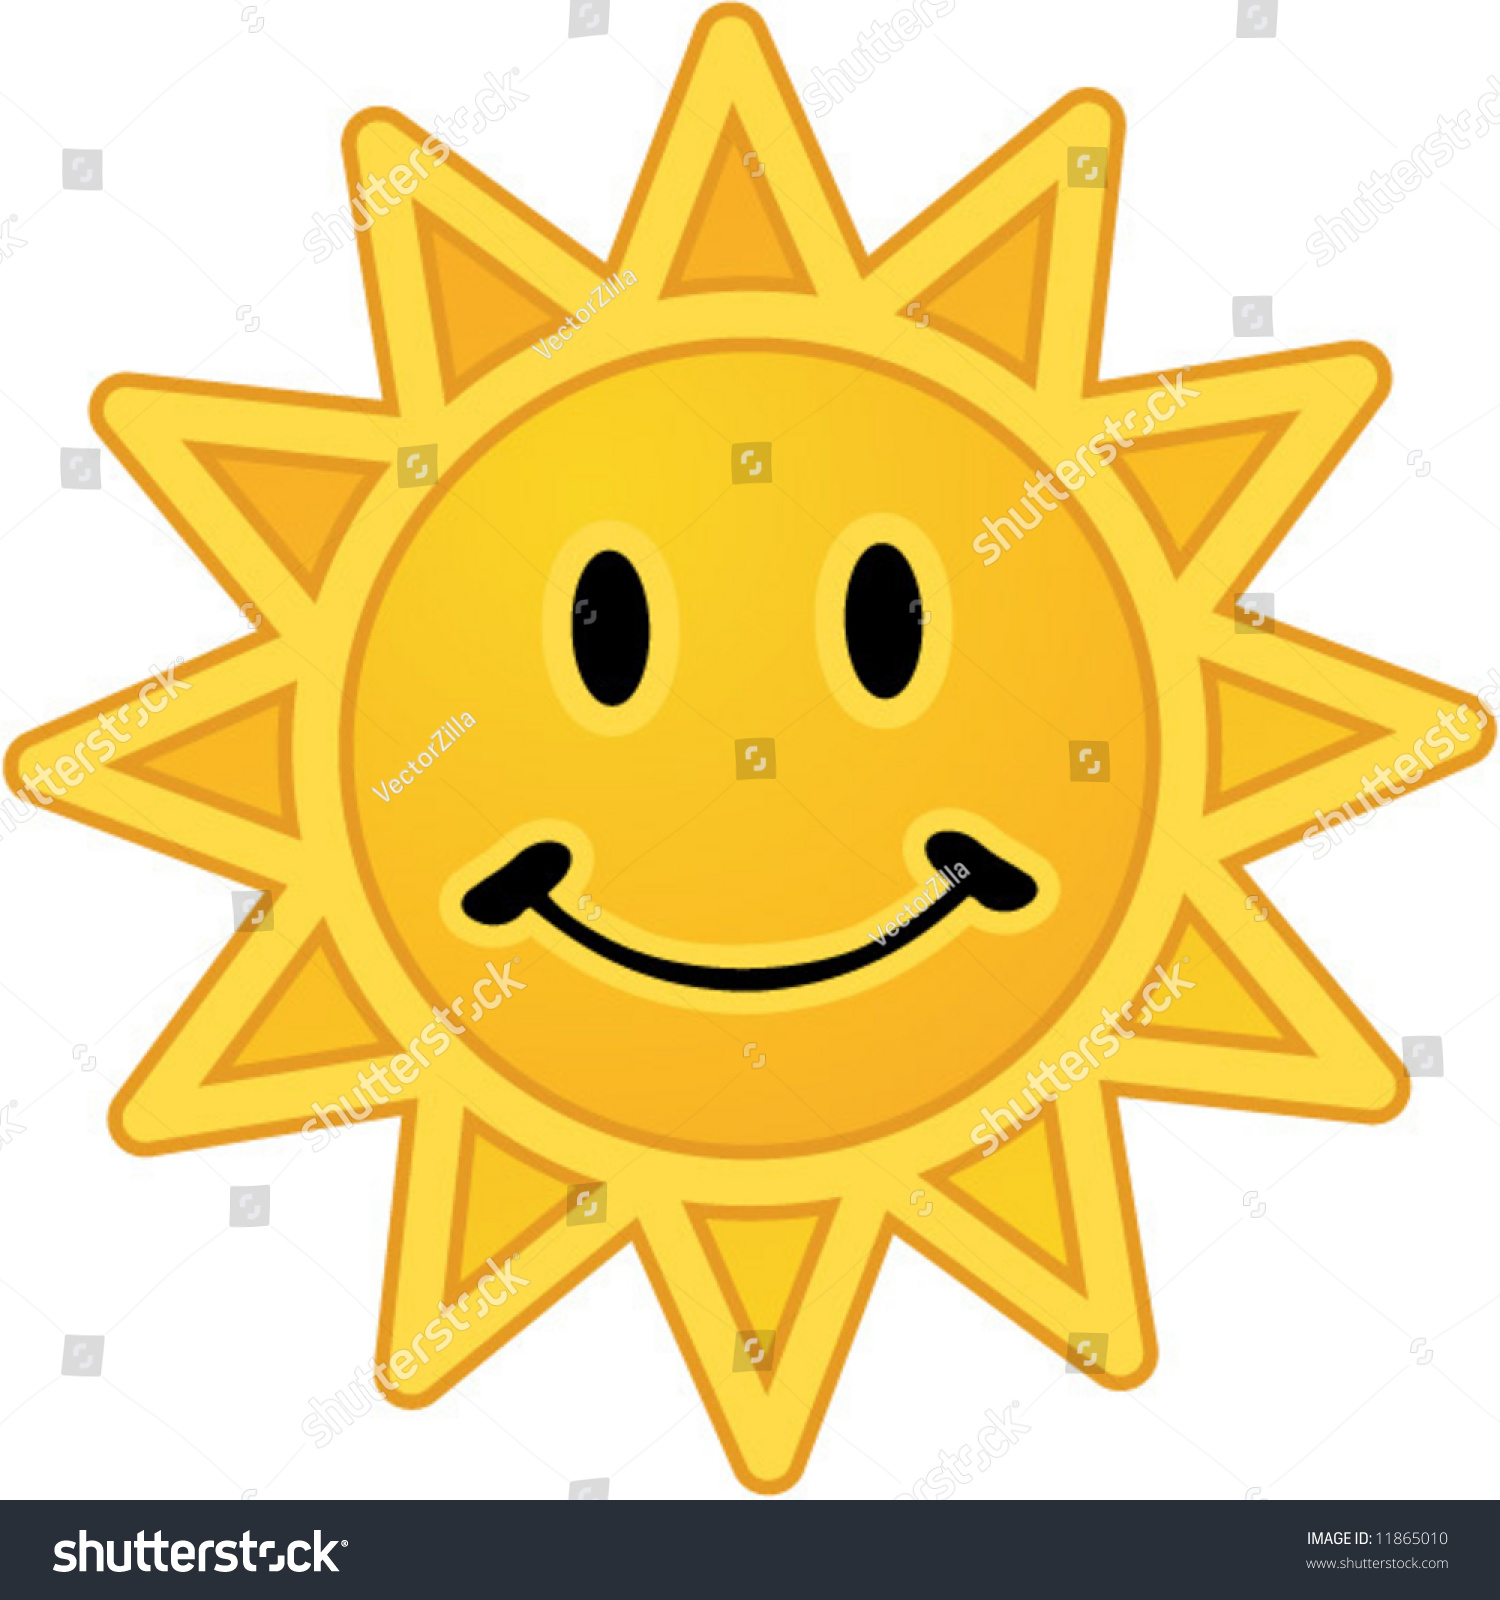 Smiling sun images - Vector Smiling Sun